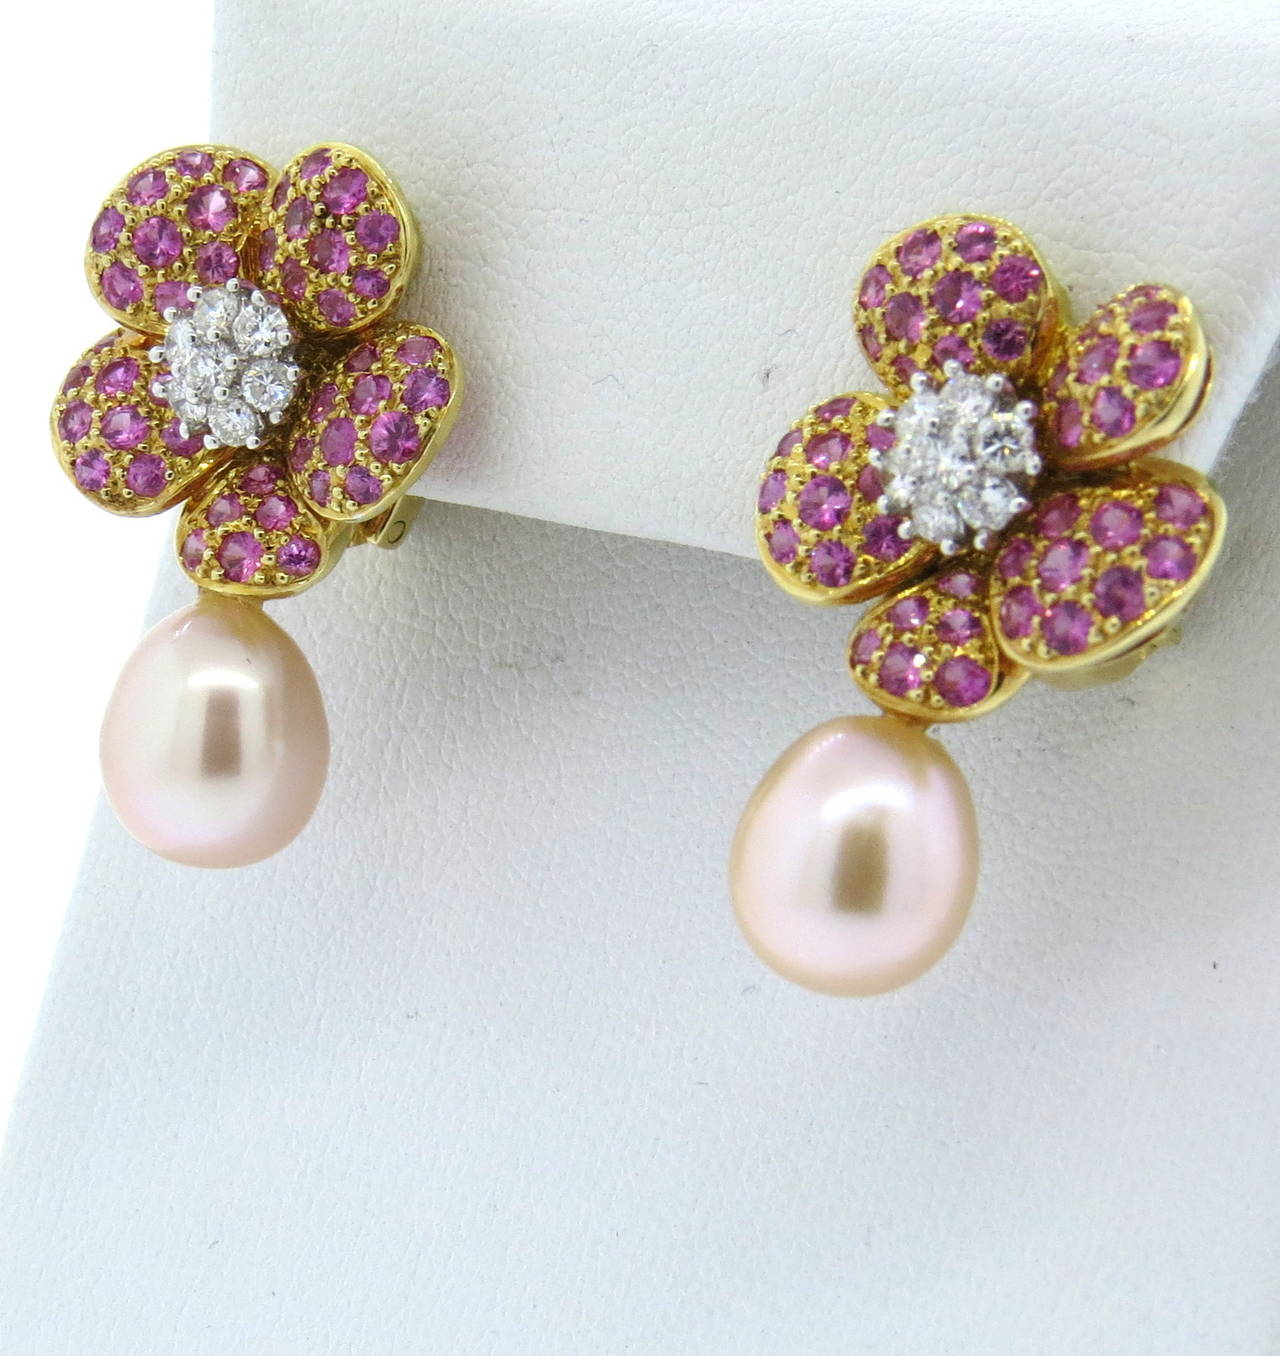 A Pair Of 18k Yellow Gold Earrings Set With Pink Shires Roximately 0 46ctw In